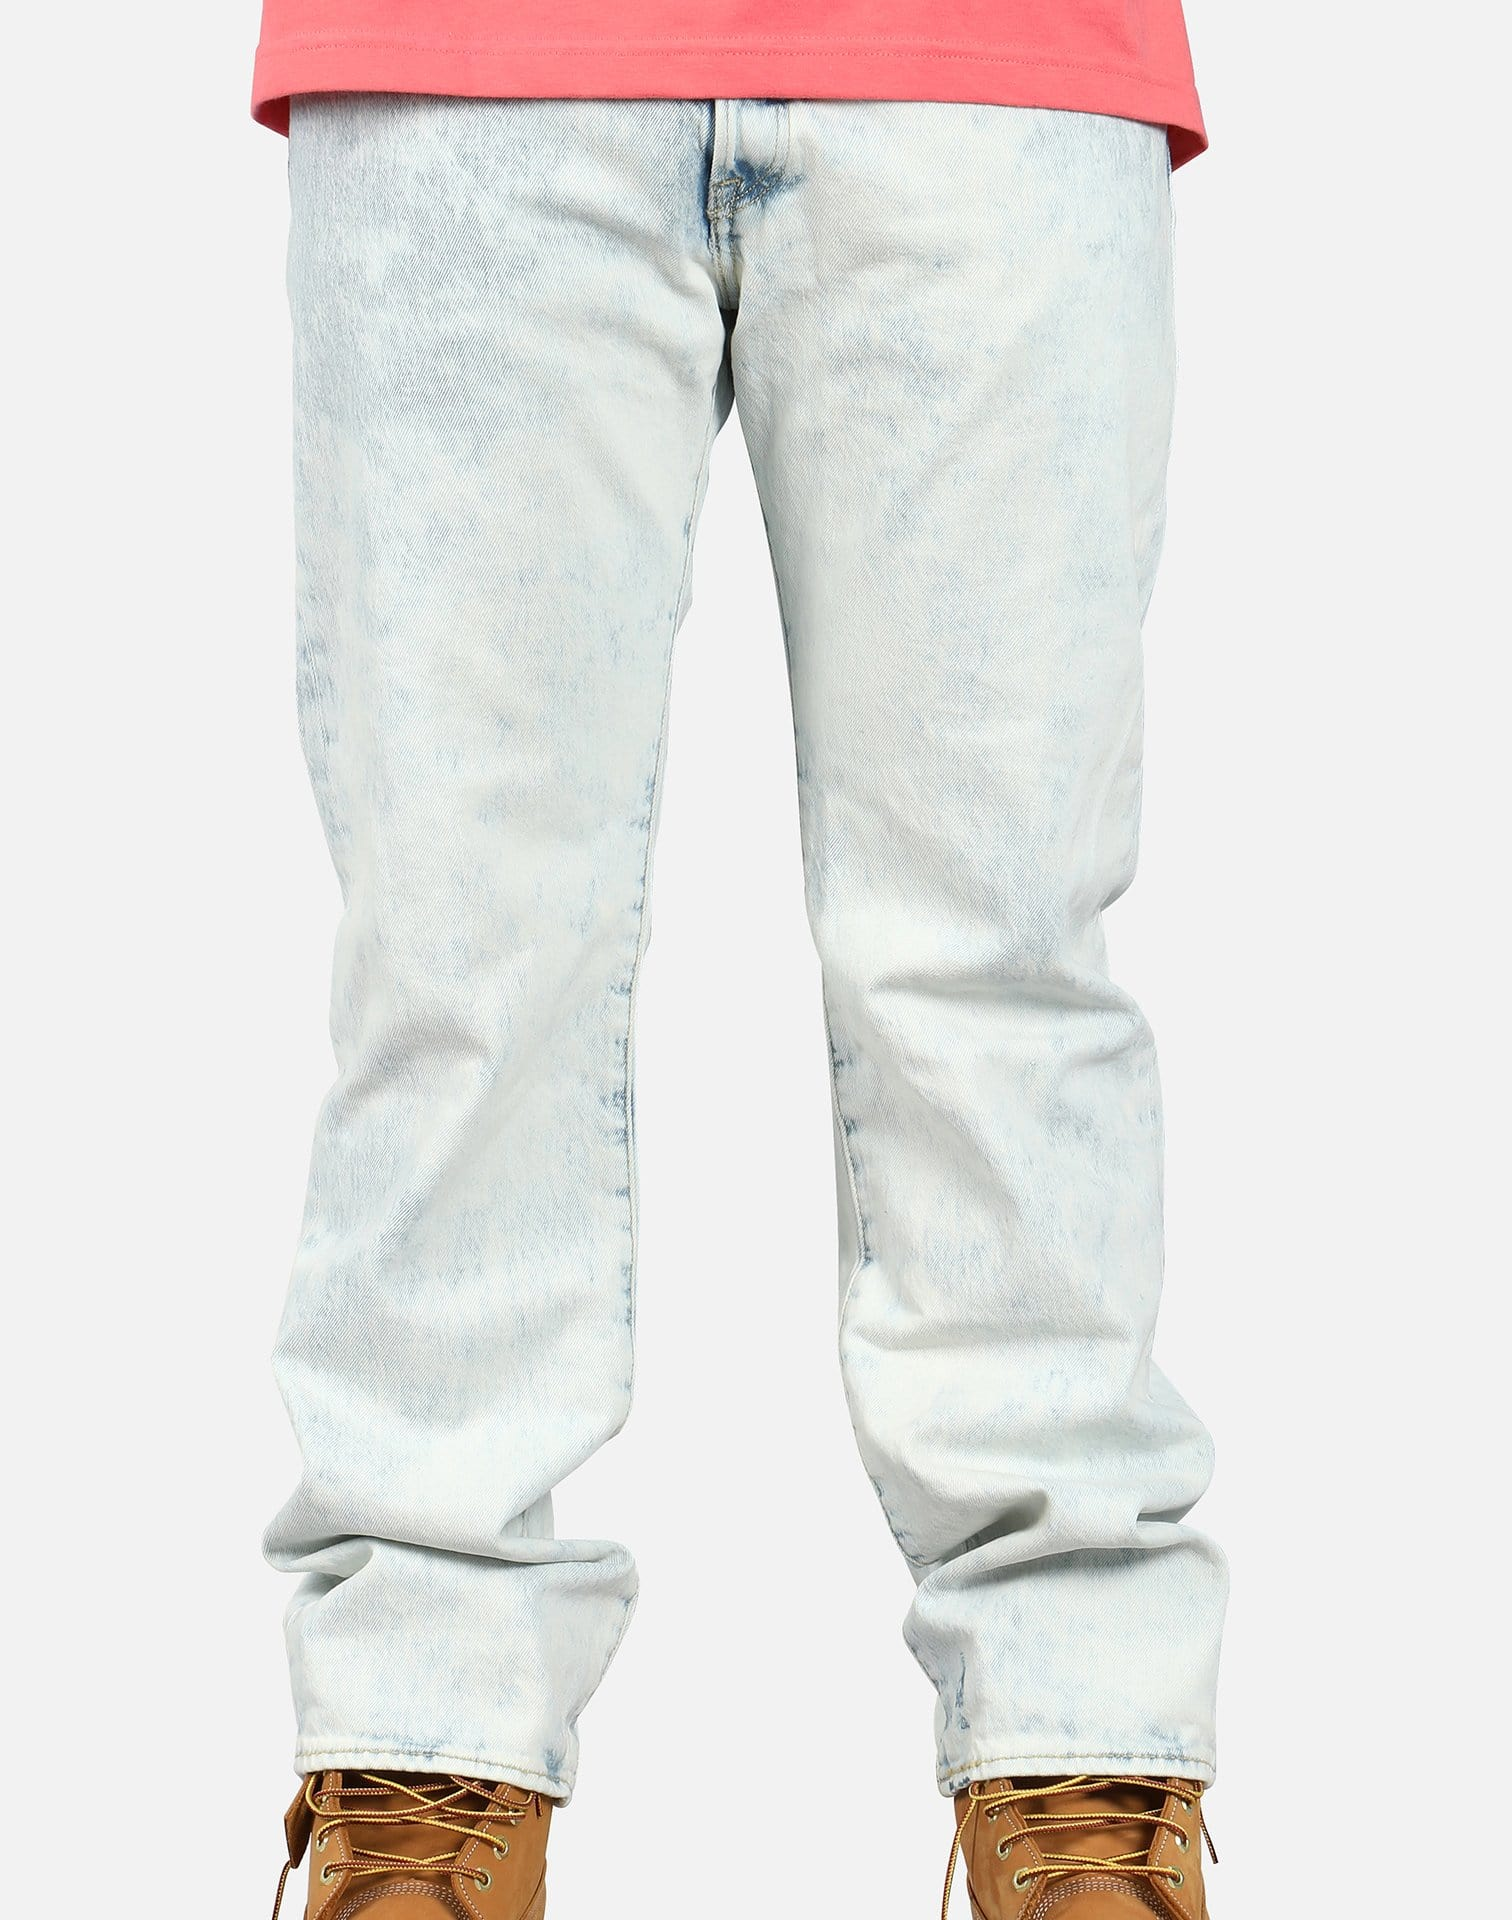 Levi's 501 Original Fit Stretch Jeans